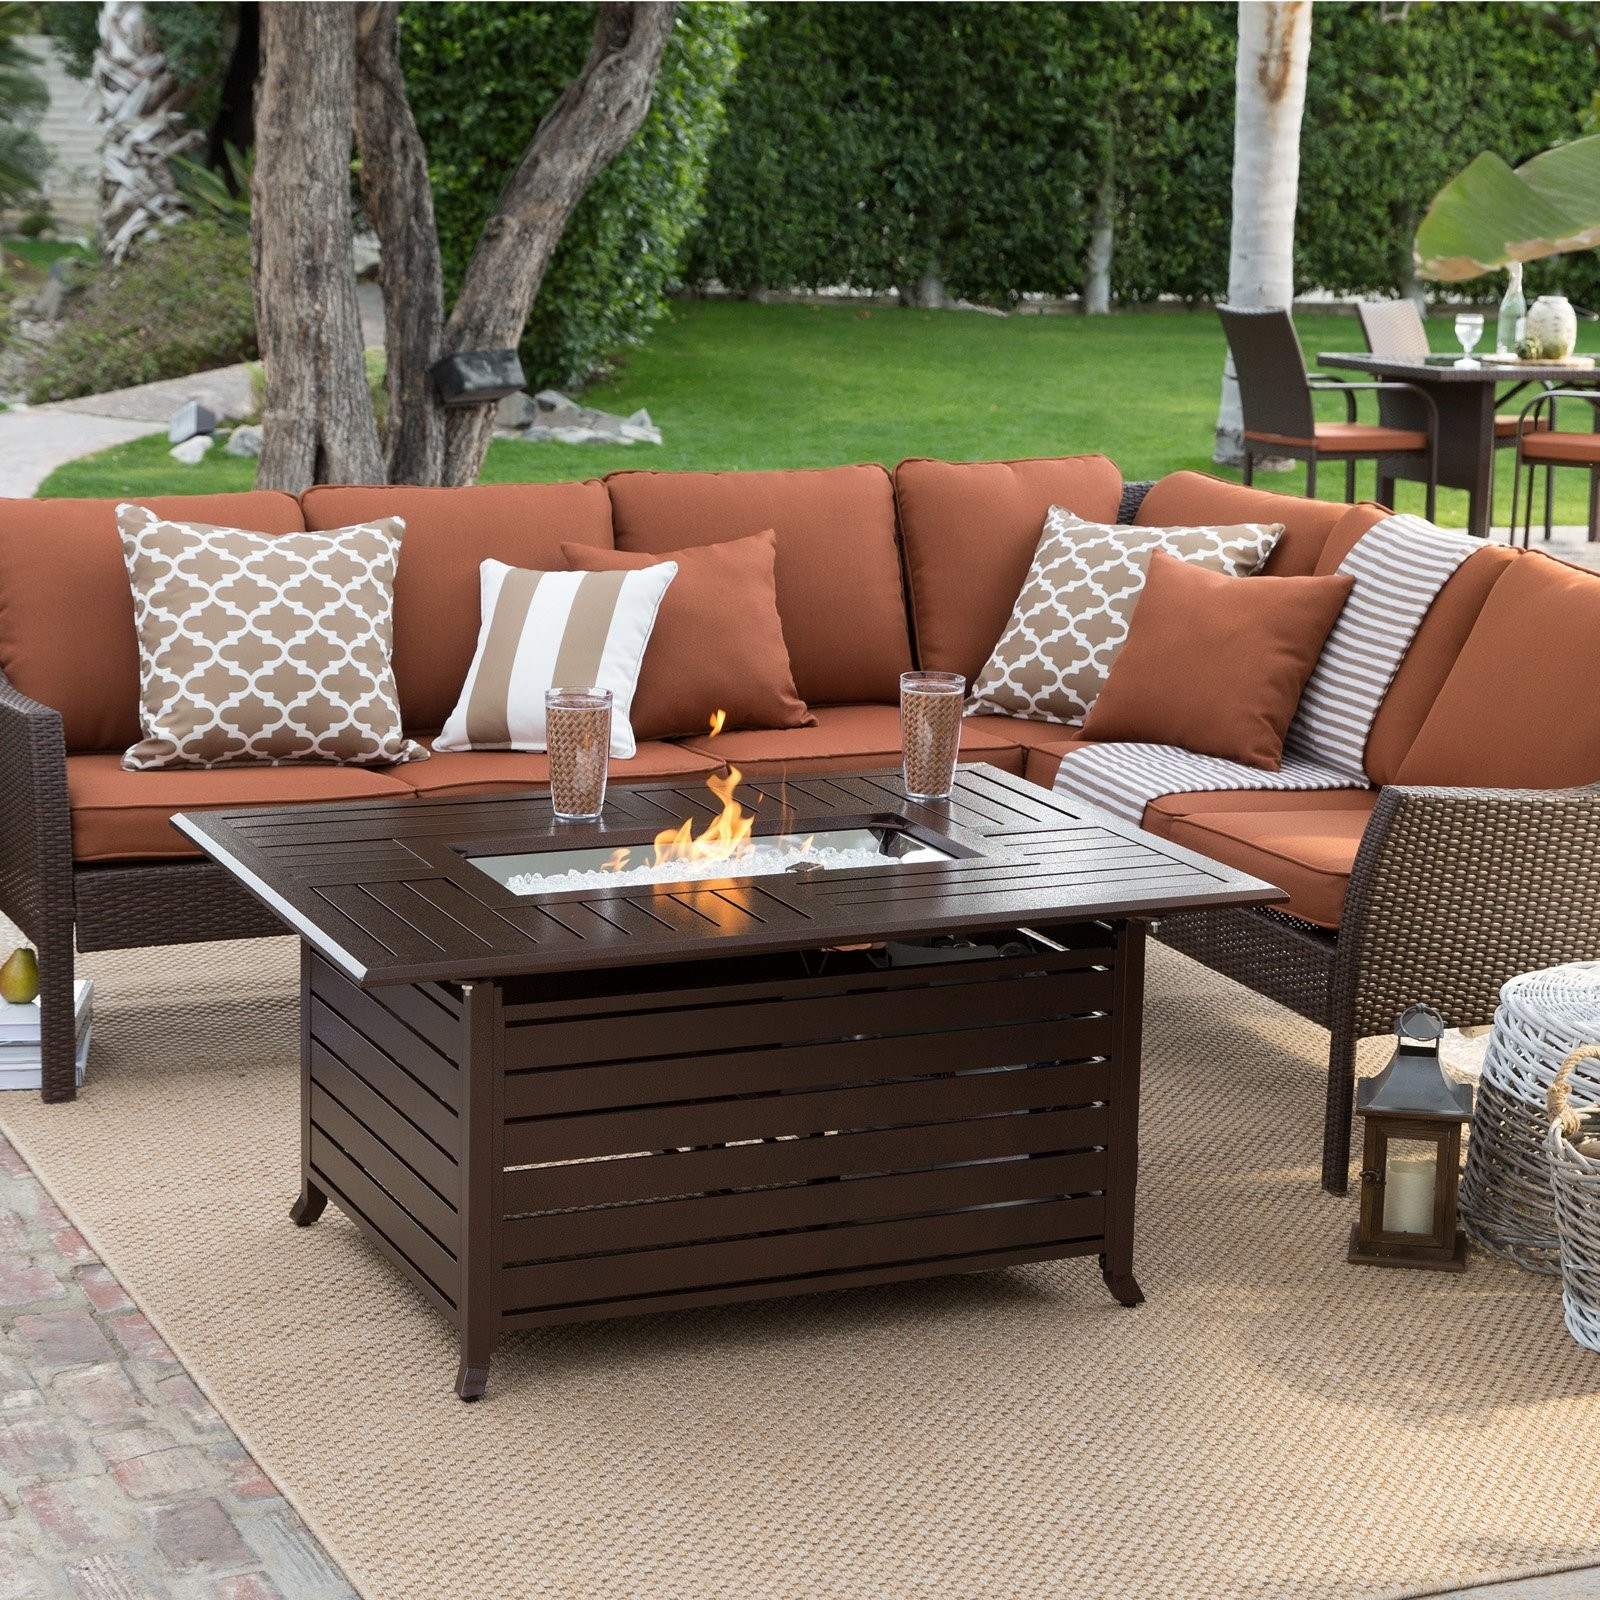 Well Known Patio Conversation Sets With Fire Pit Table With 30 Luxury Patio Set With Fire Pit Table Design (View 8 of 15)